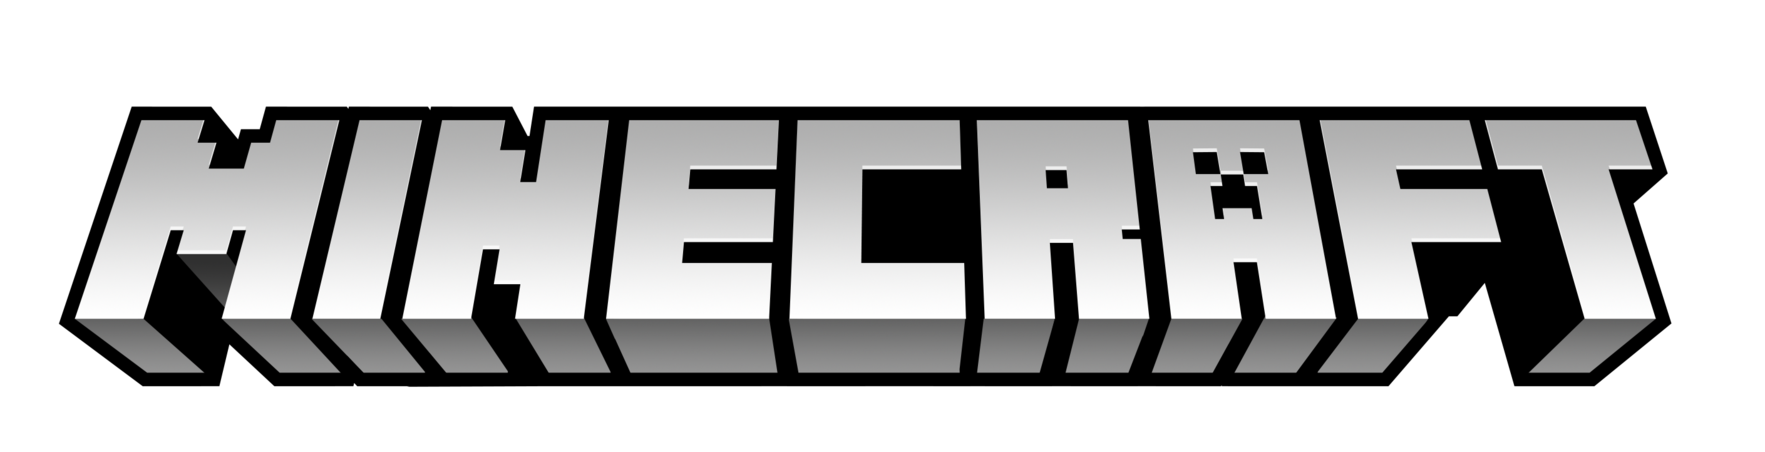 Minecraft HD PNG - 151588